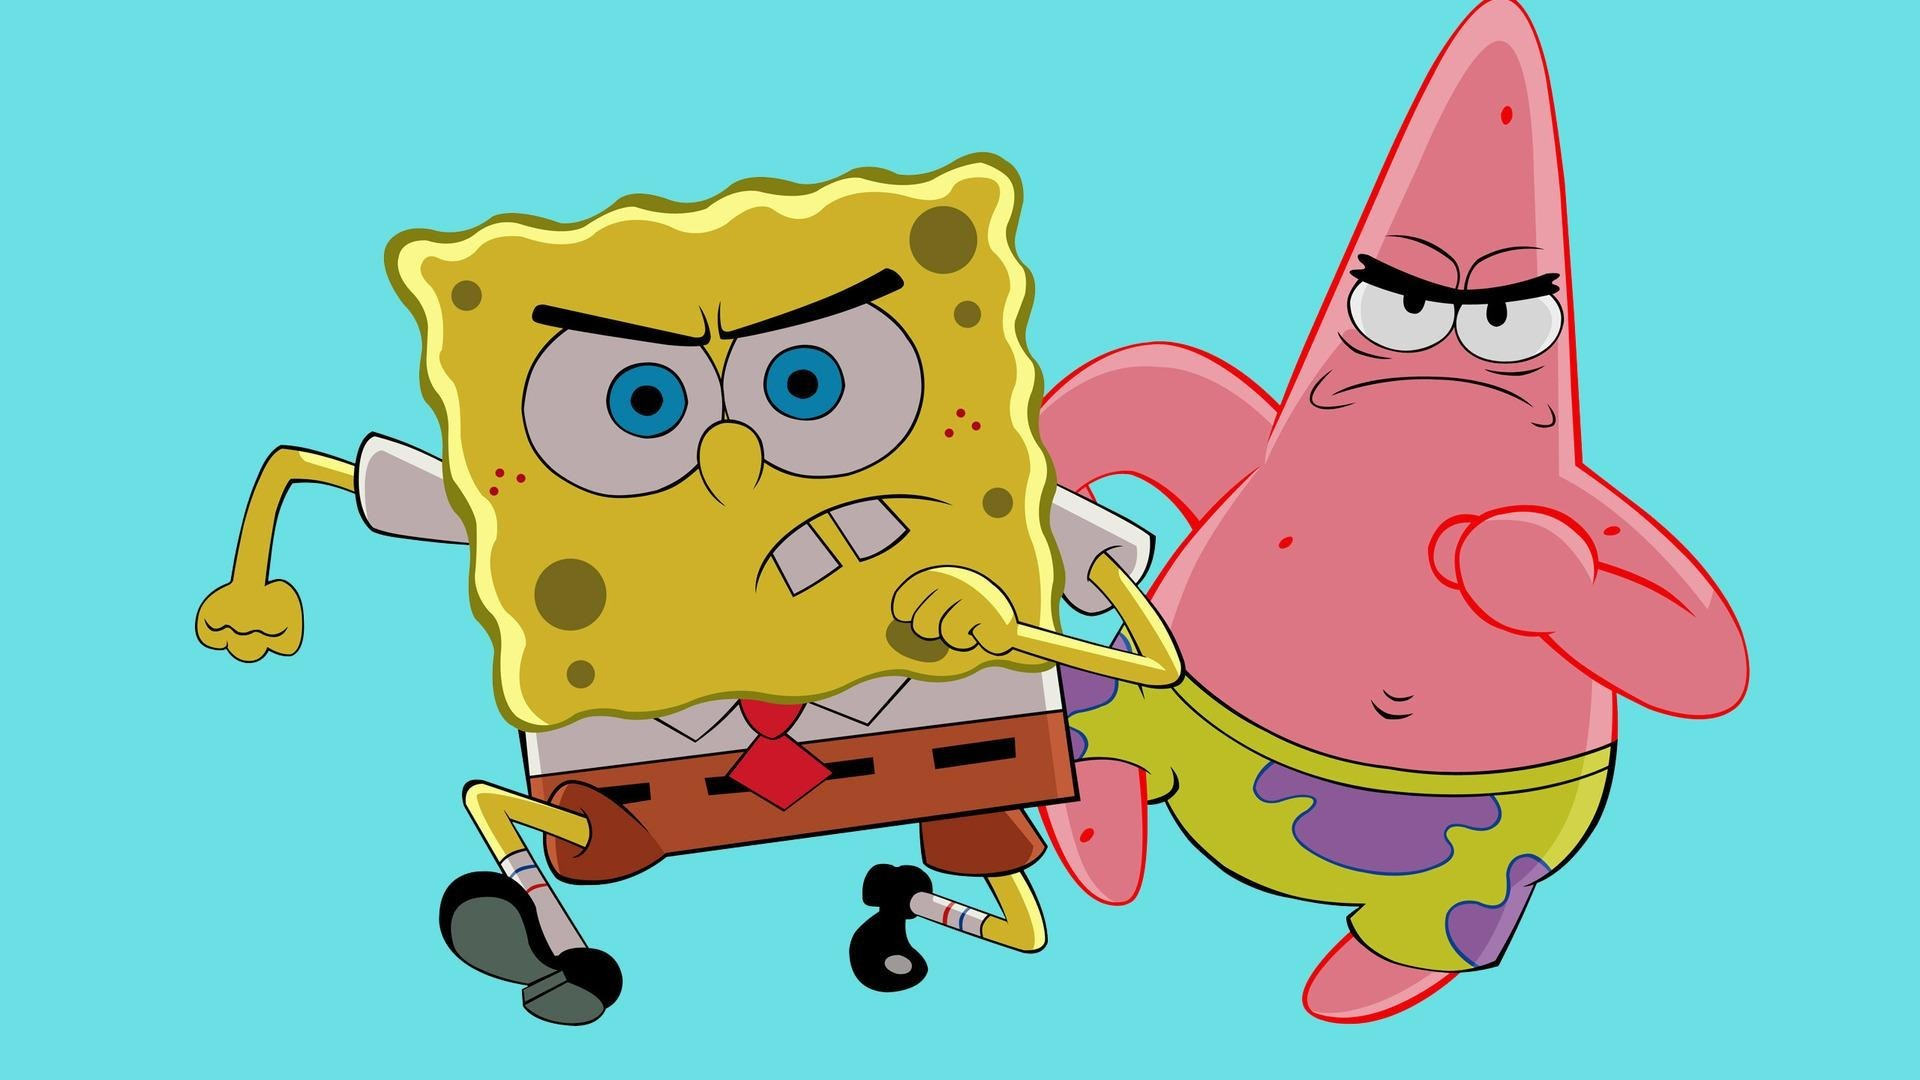 Spongebob and Patrick Star